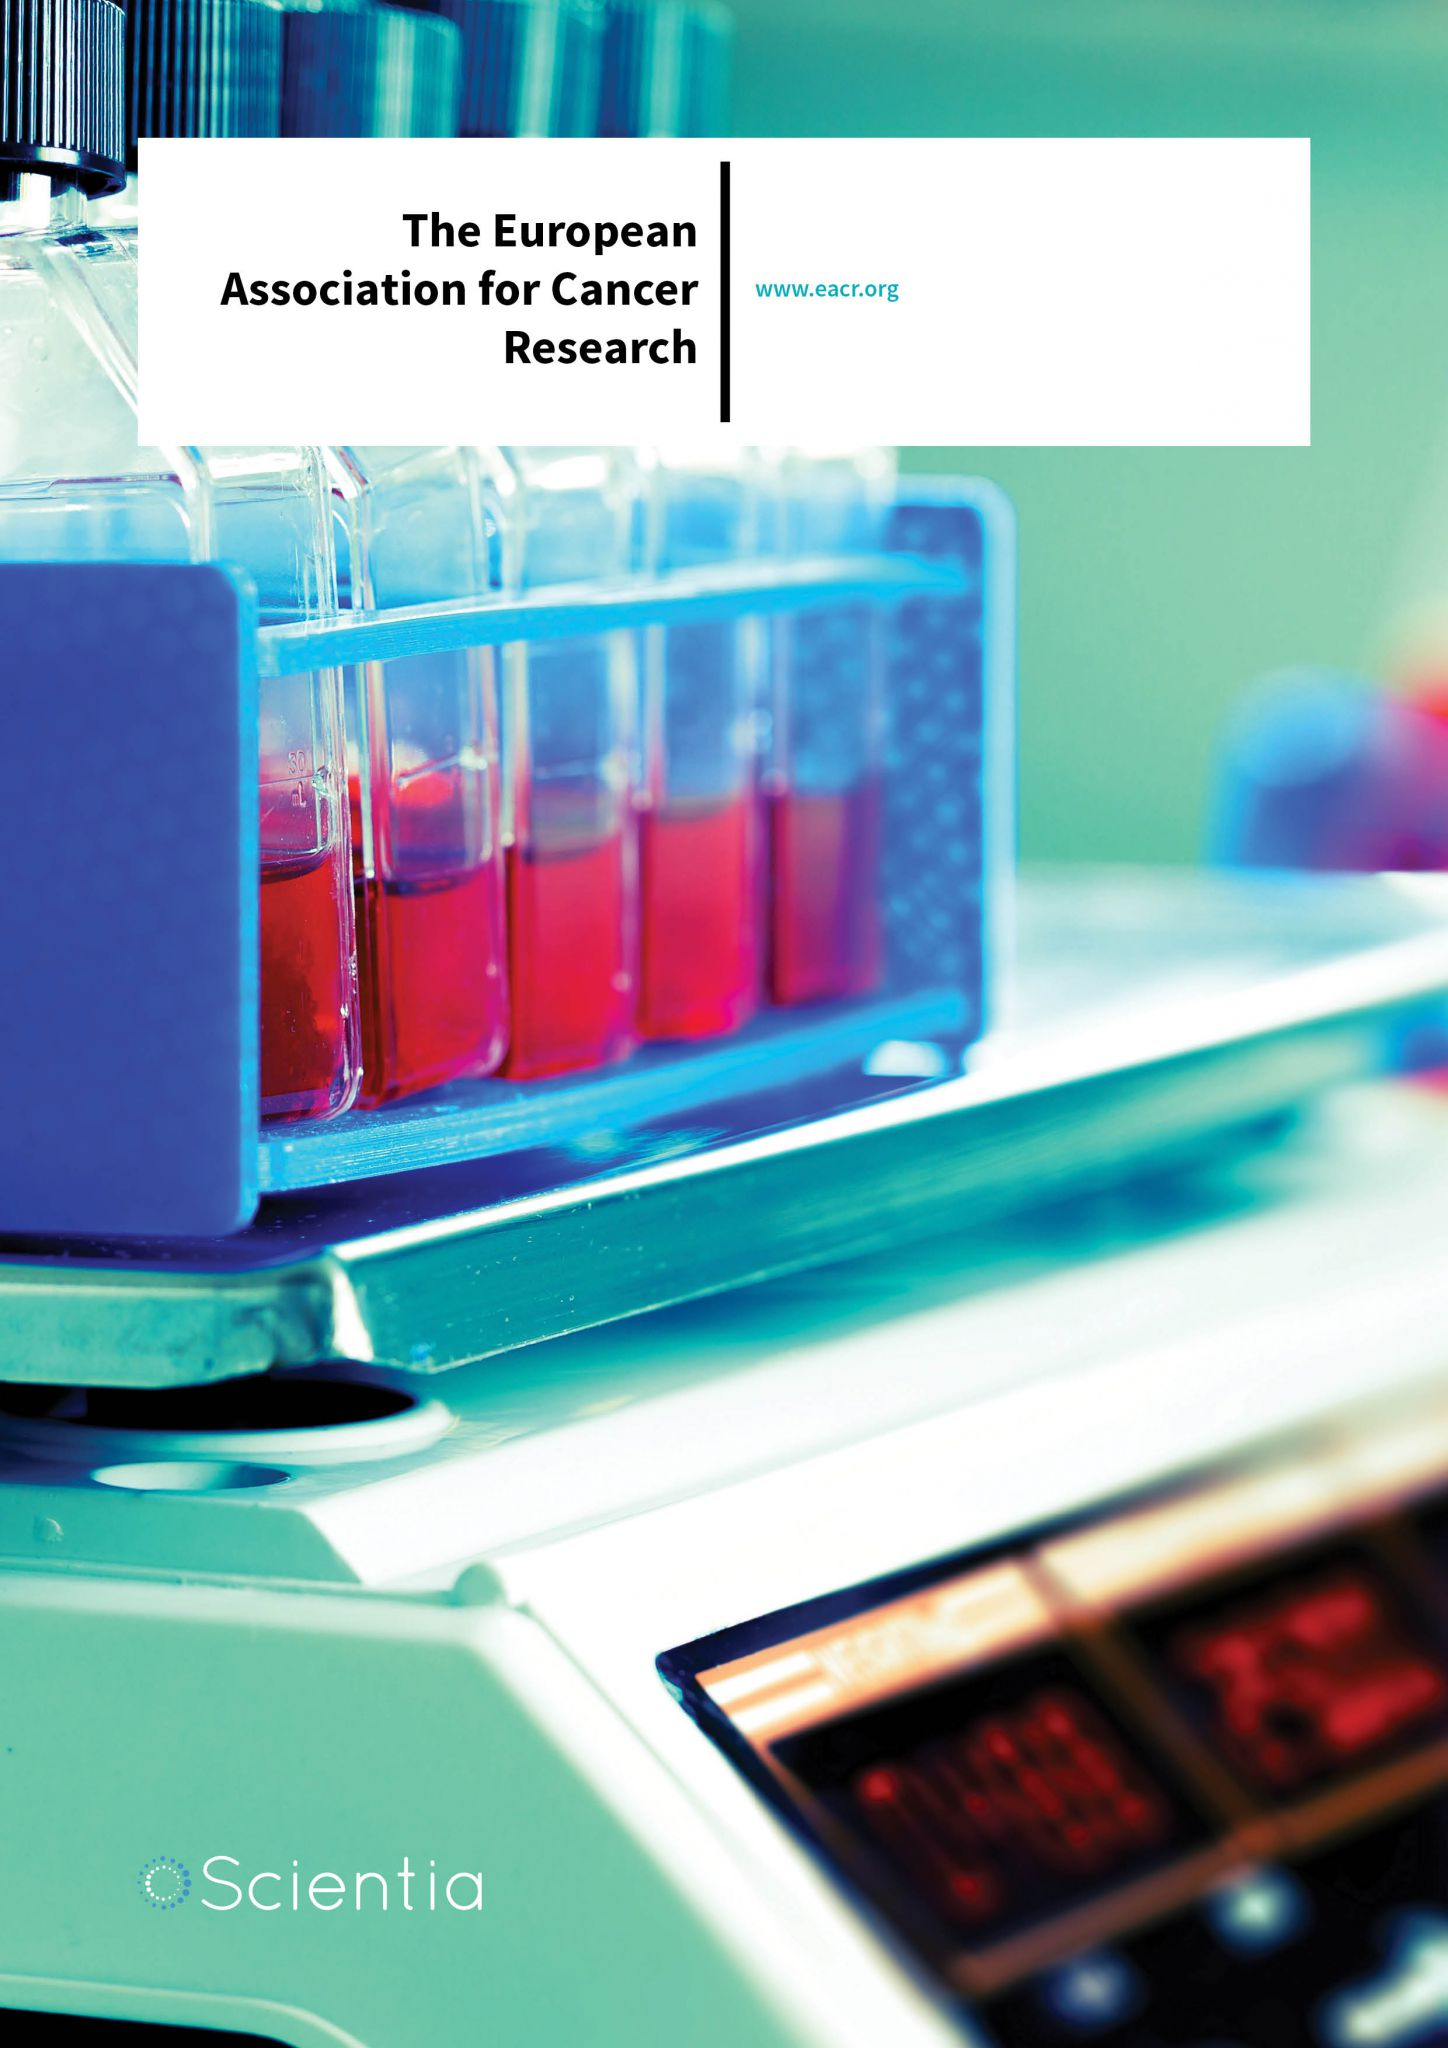 The European Association For Cancer Research